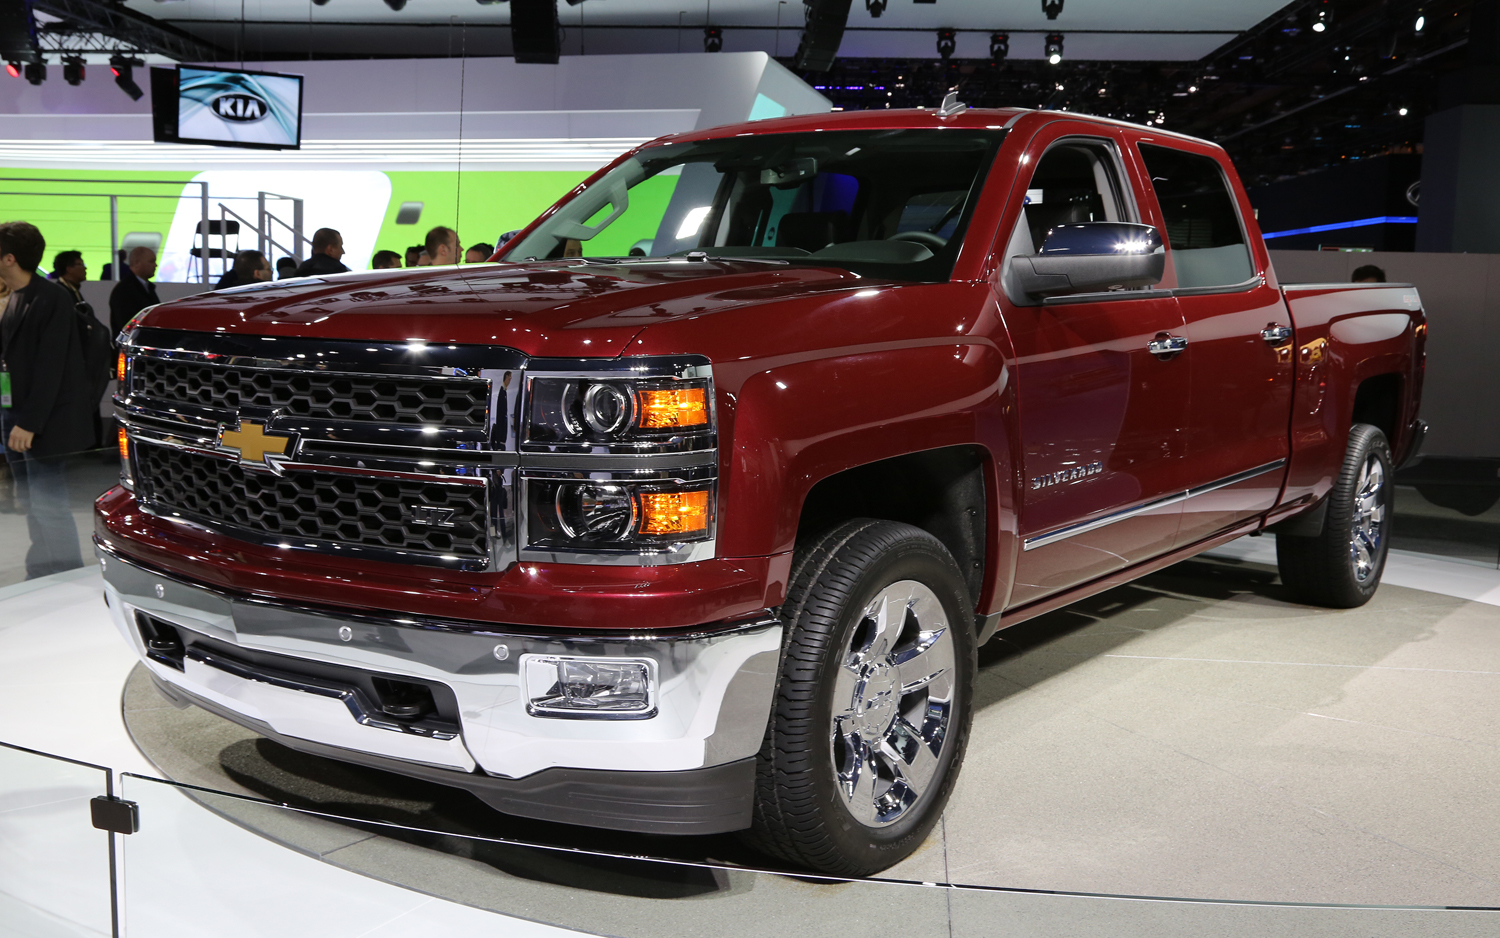 2014 Chevrolet Silverado 1500 Review Price Concept Release at